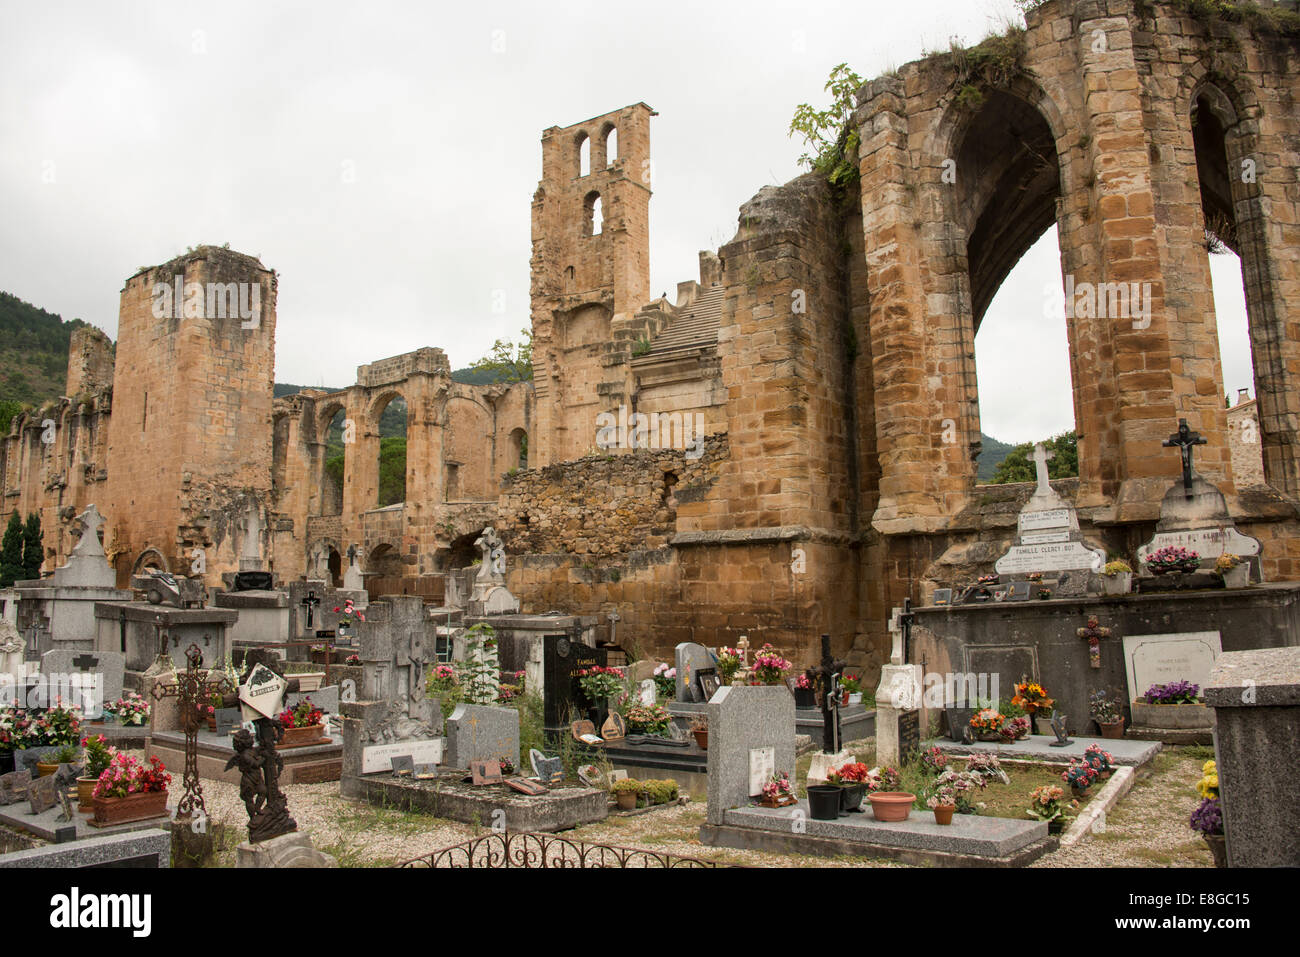 ruins of ninth century Benedictine abbey of Notre Dame in village of Alet les Bains in Aude France - Stock Image